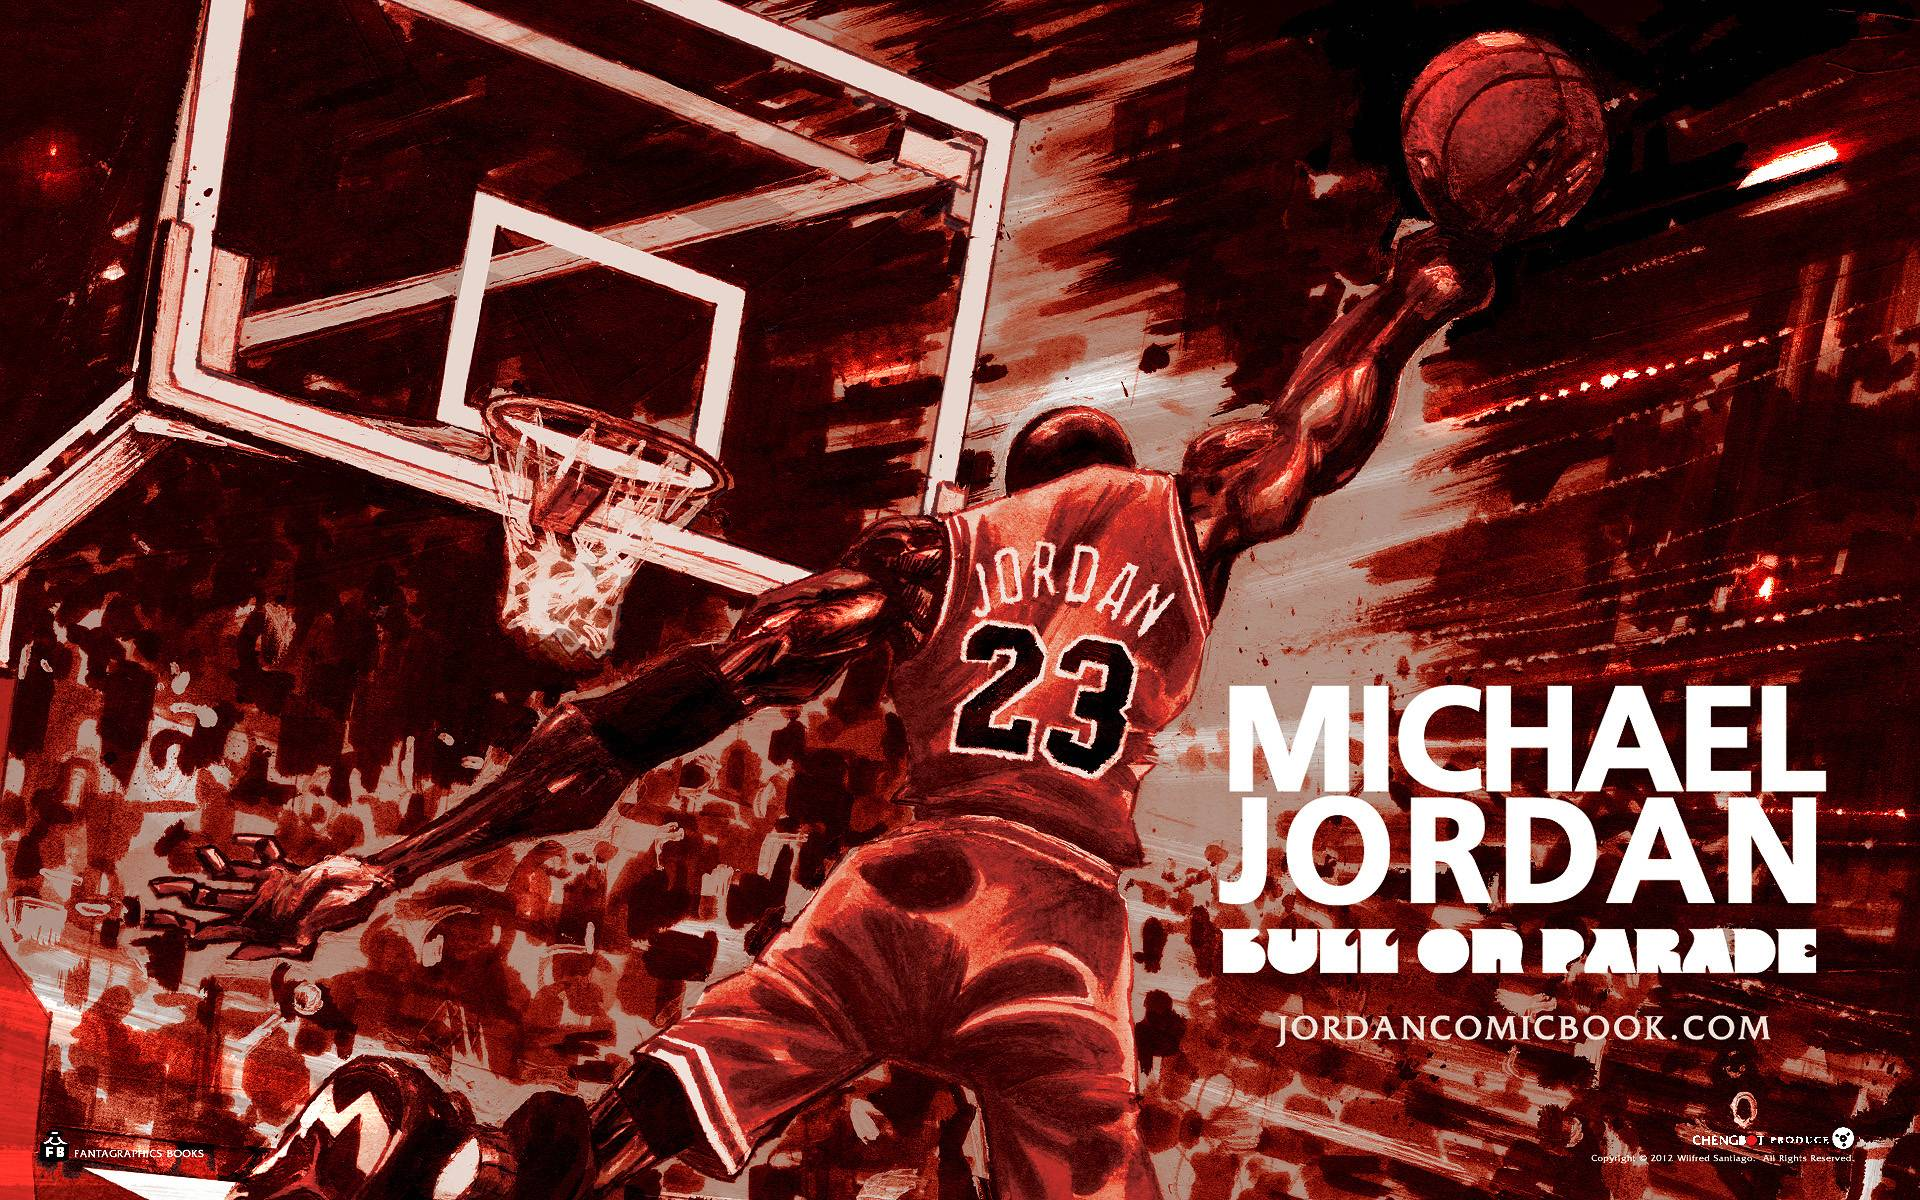 1920x1200 - Michael Jordan Wallpapers 10